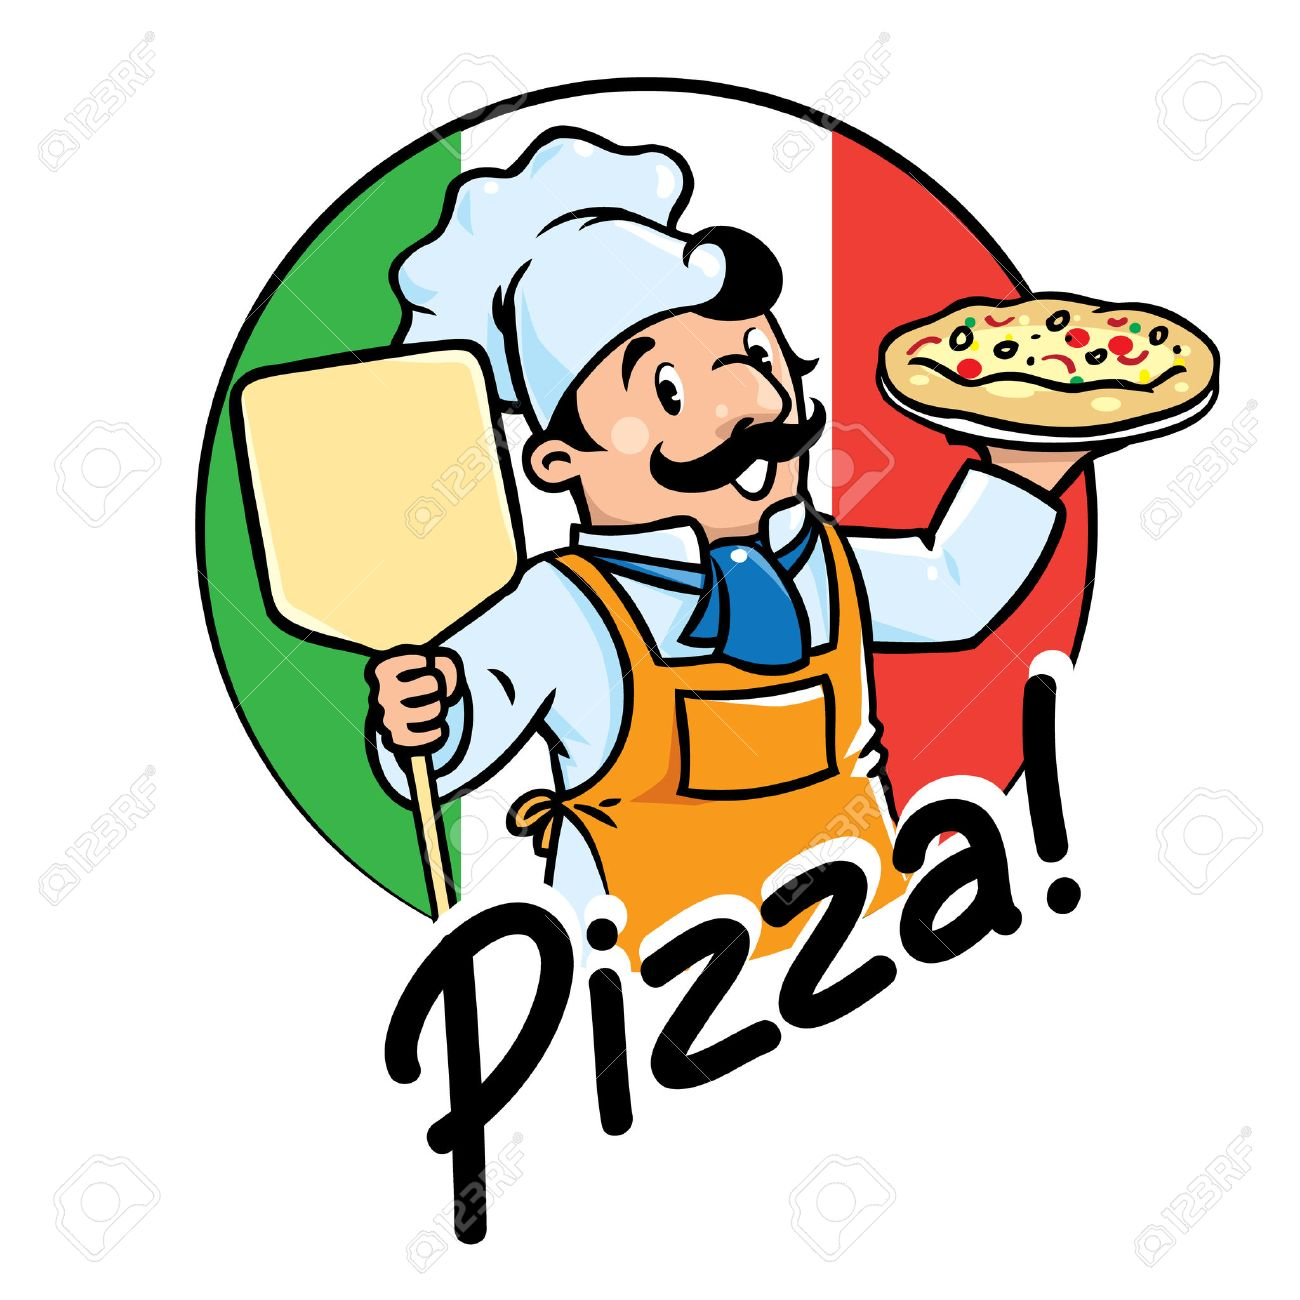 Emblem of funny cook or chef or baker with pizza on background colors of the Italian flag. Children vector illustration. - 54716031